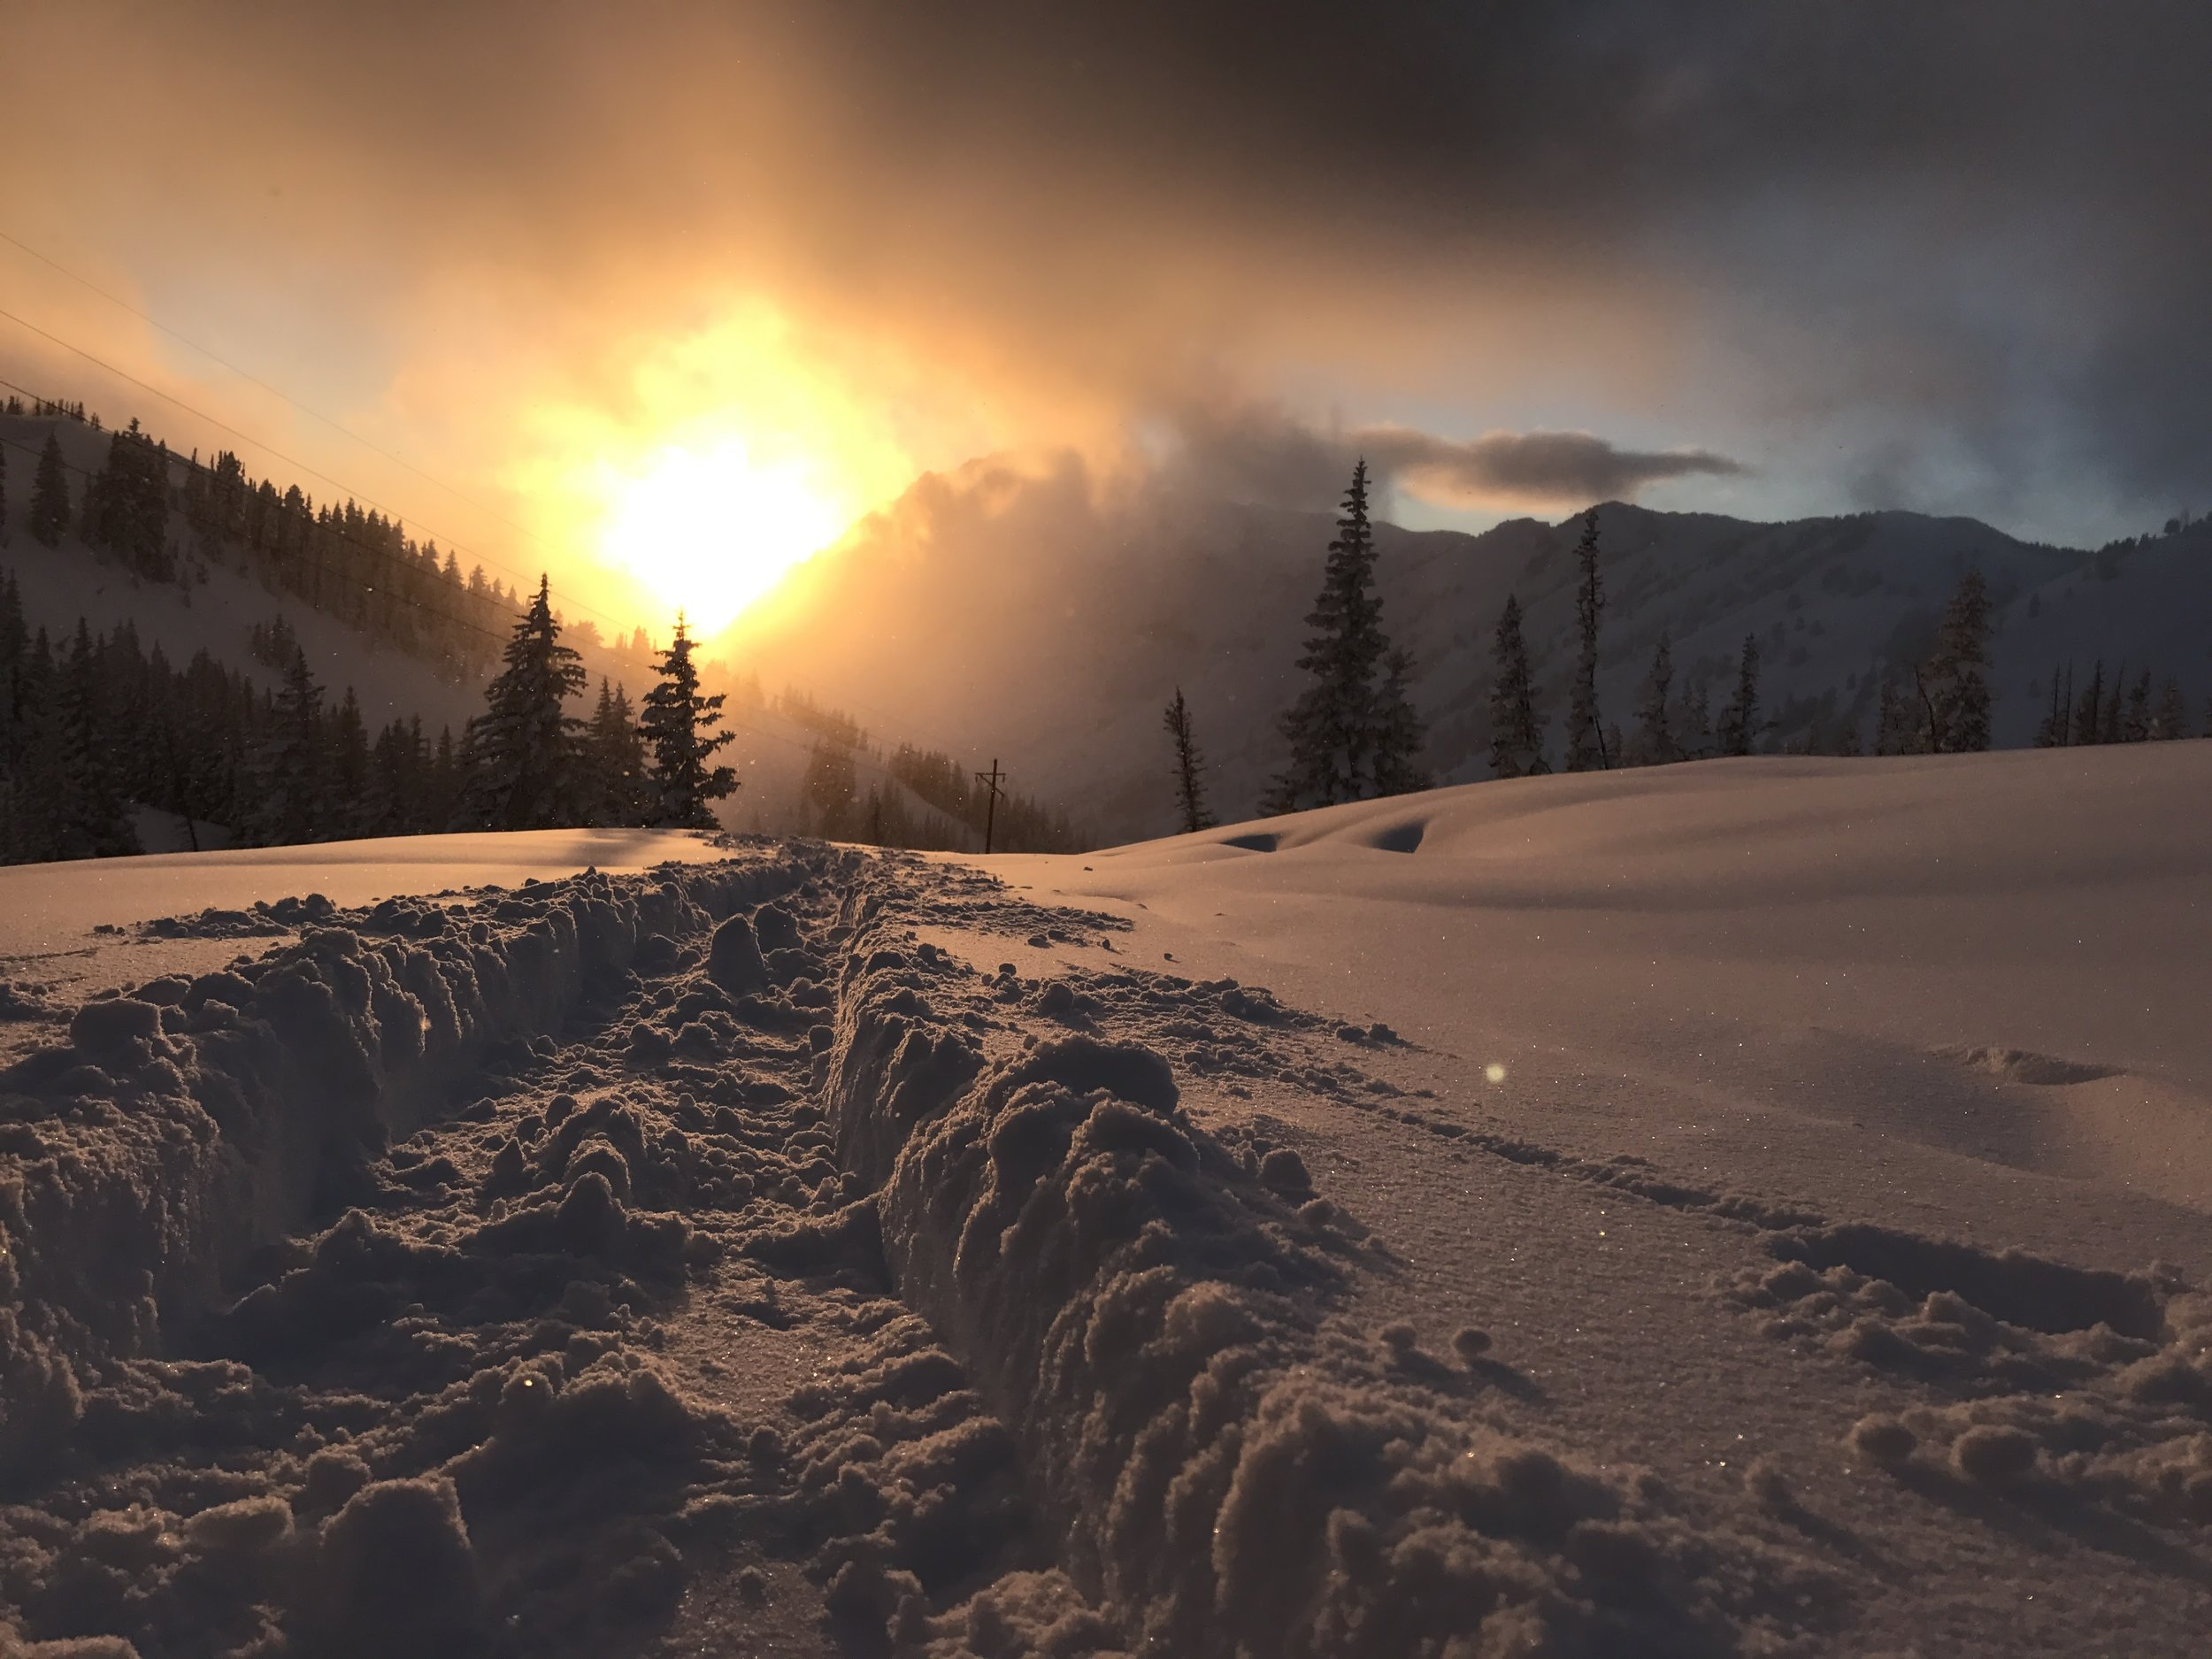 Sunset from the Wasatch Mountains in winter